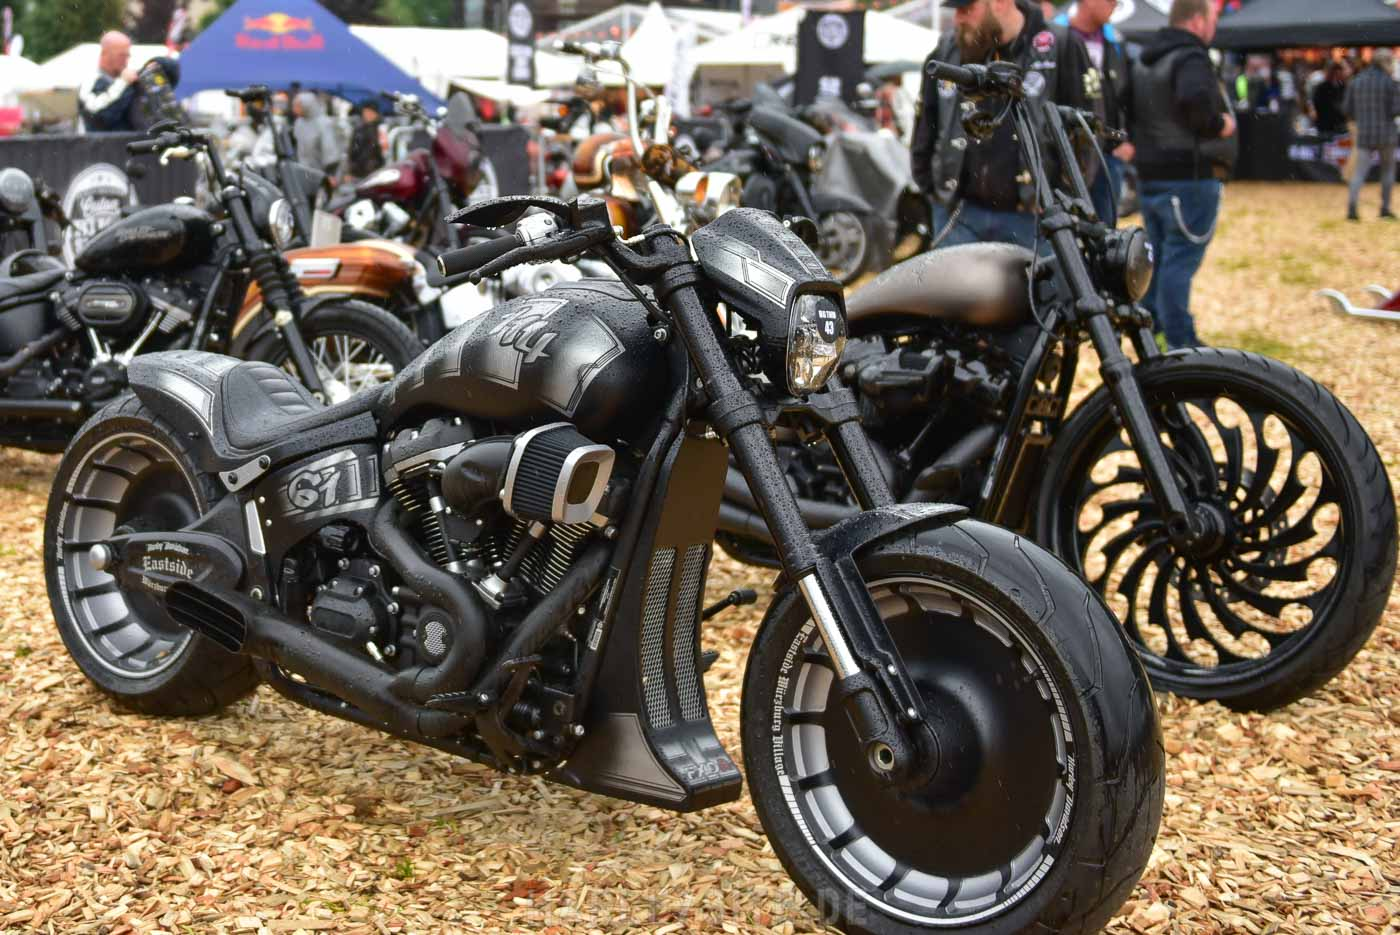 European Bike Week 2019 BikeShow-1550